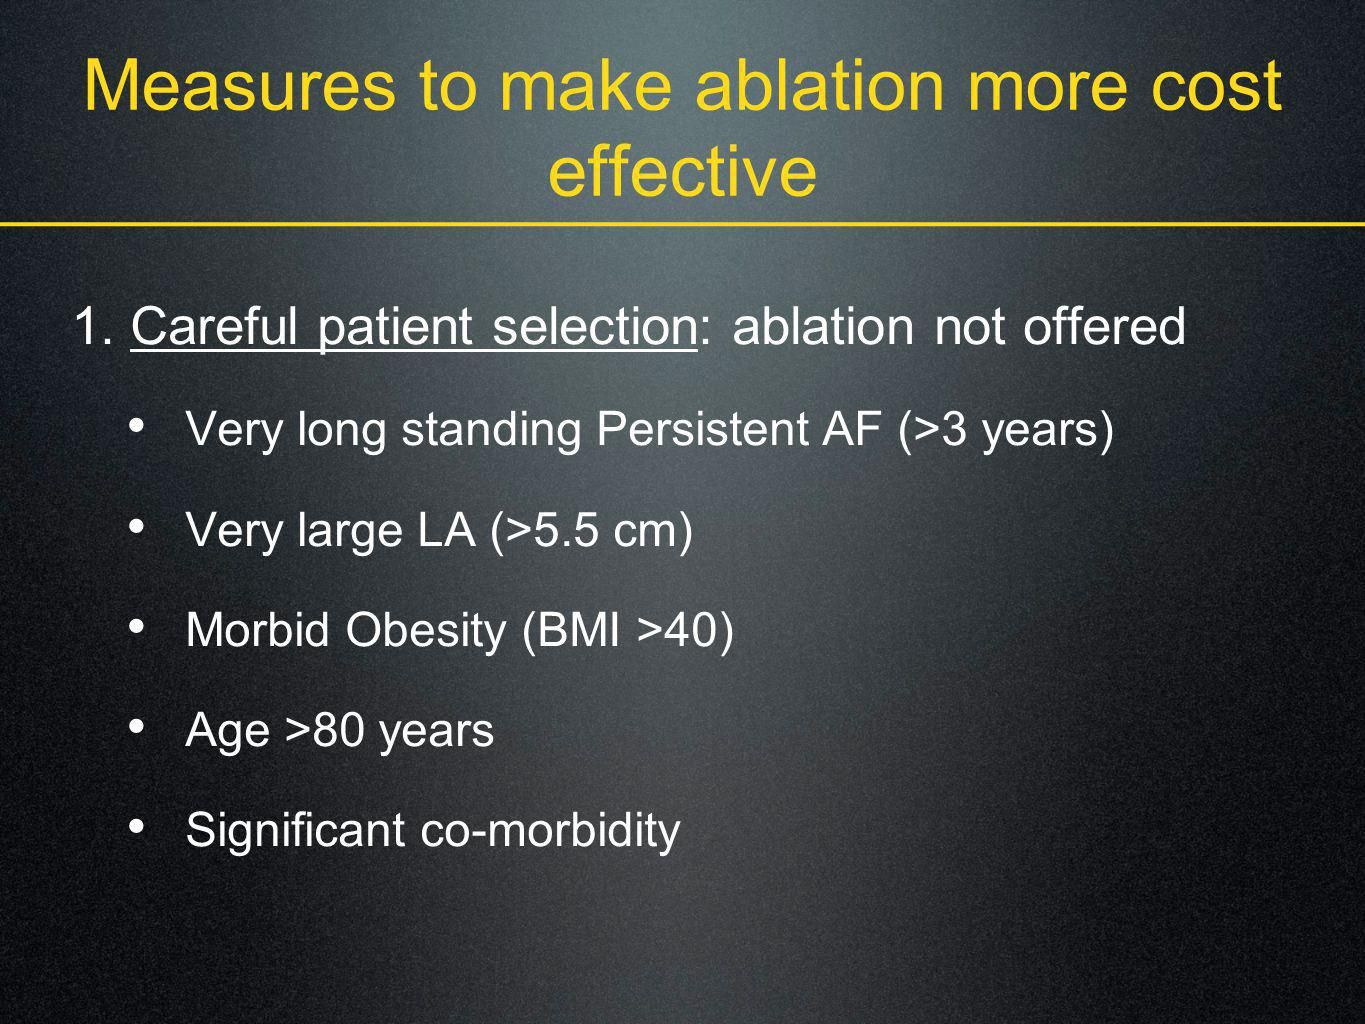 Measures to make ablation more cost effective 1. Careful patient selection: ablation not offered Very long standing Persistent AF (>3 years) Very larg